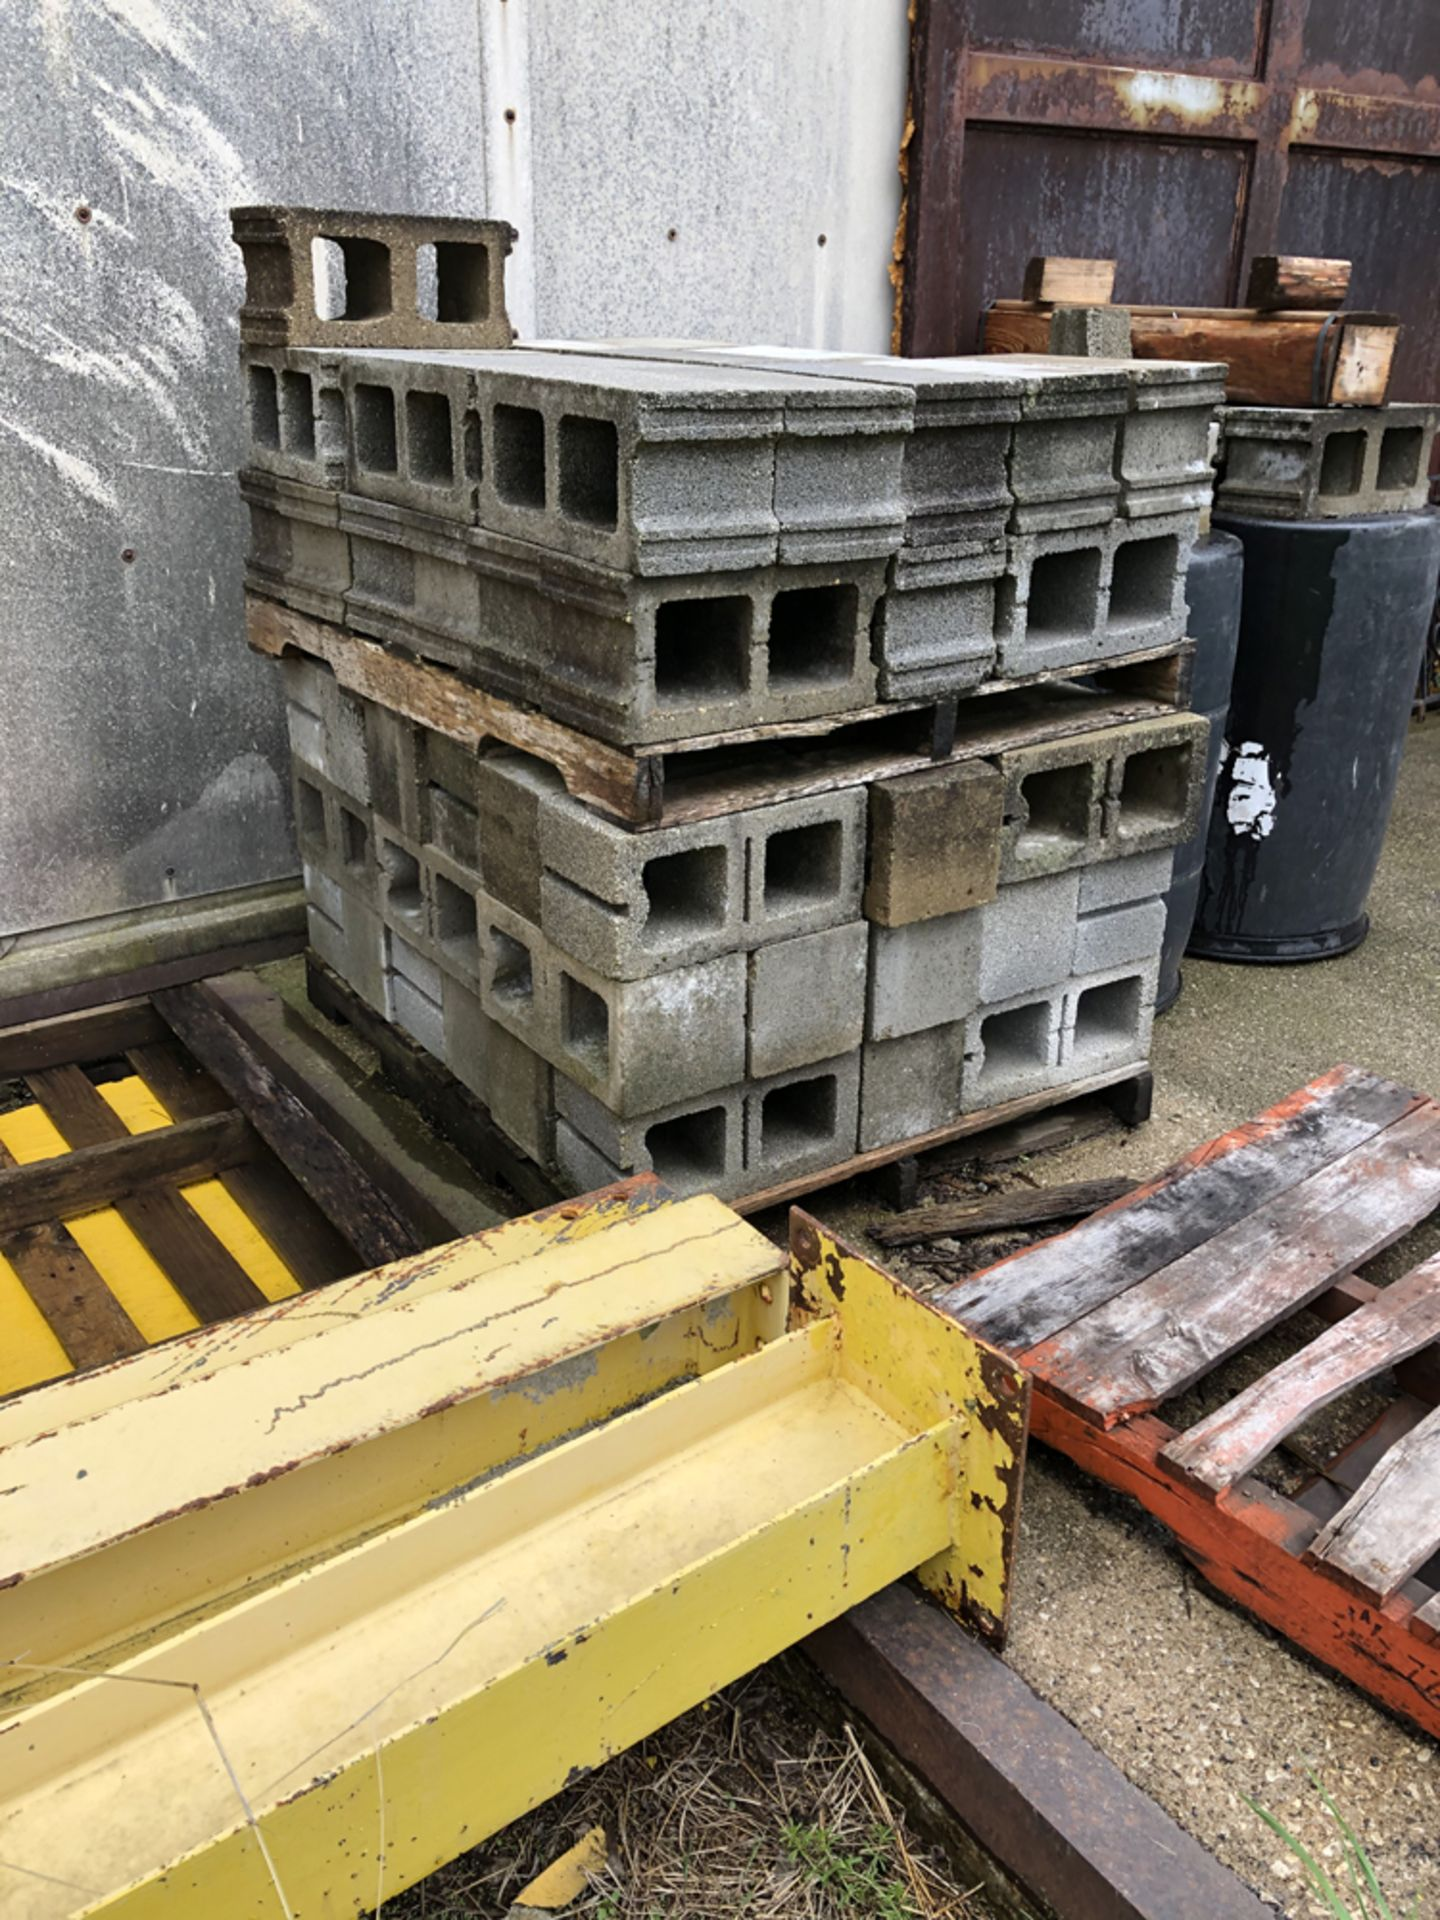 Lot 149c - approx. 75 new cement blocks